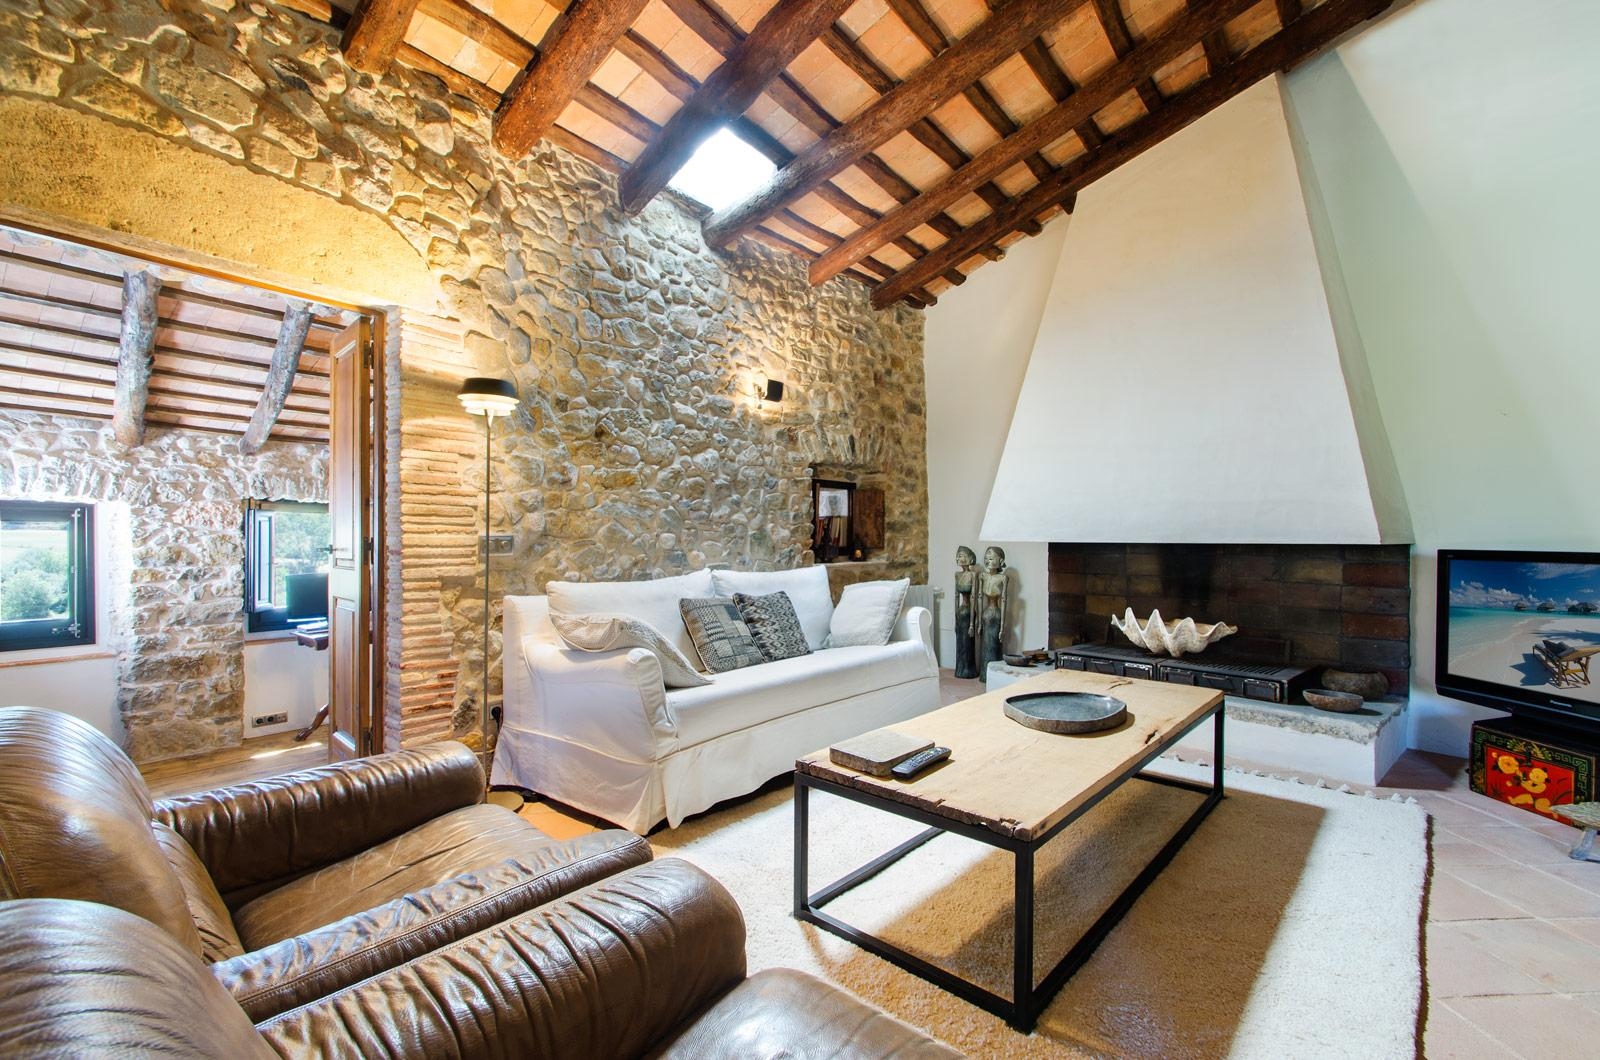 10. Villa for sale in Girona - Traditional Masia, Catalonia country house, for sale in Girona